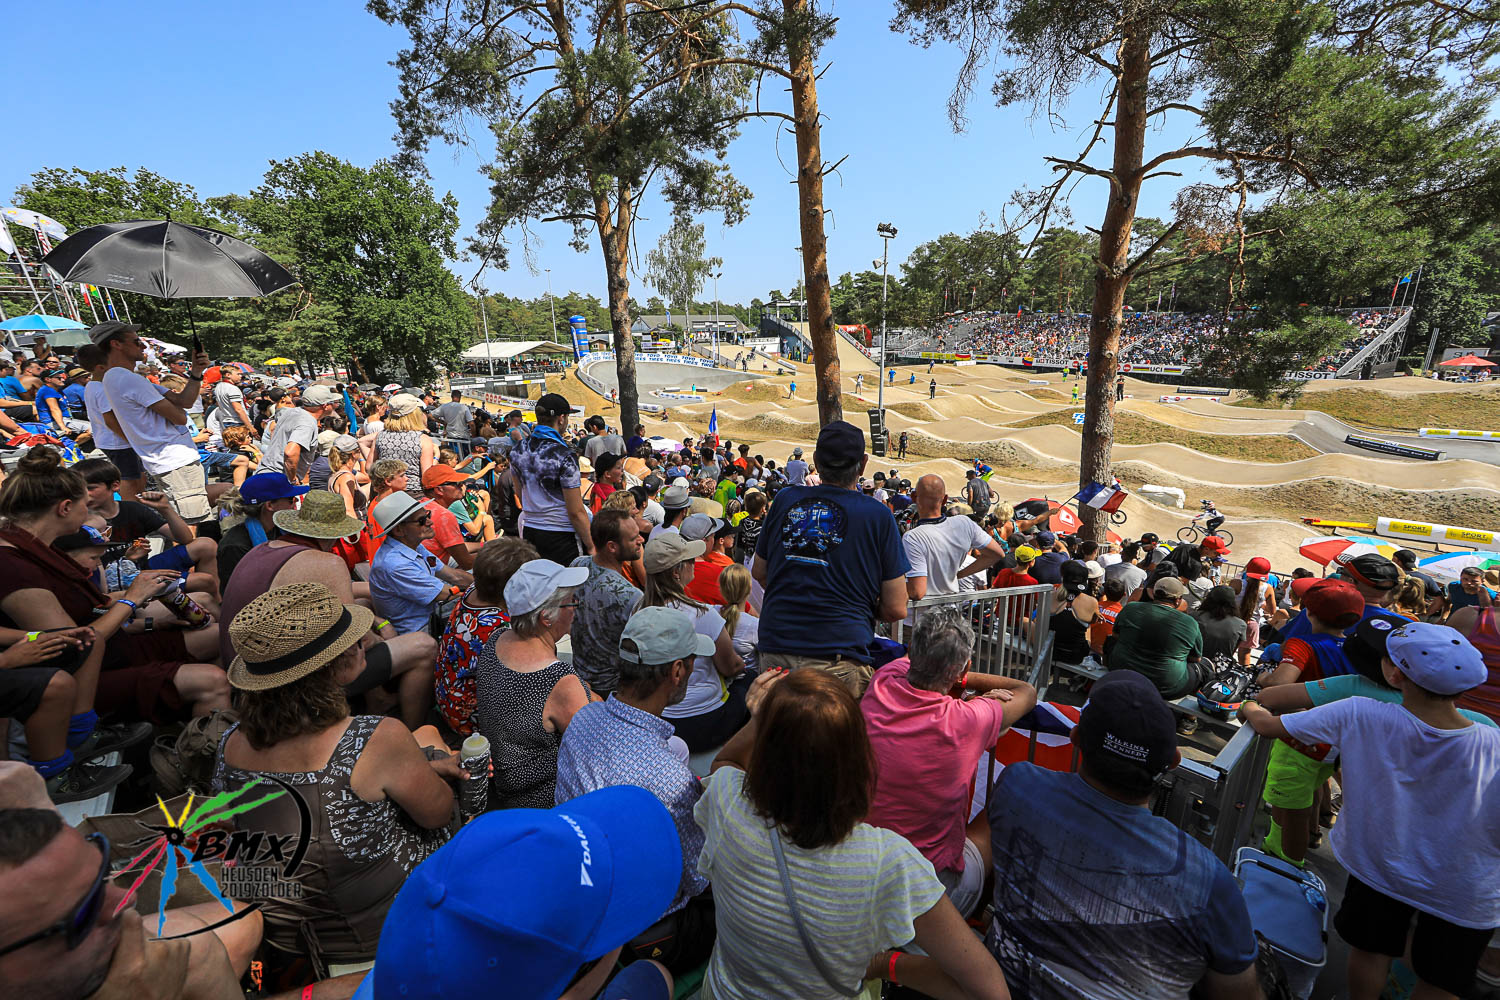 3 NATIONS CUP BMX